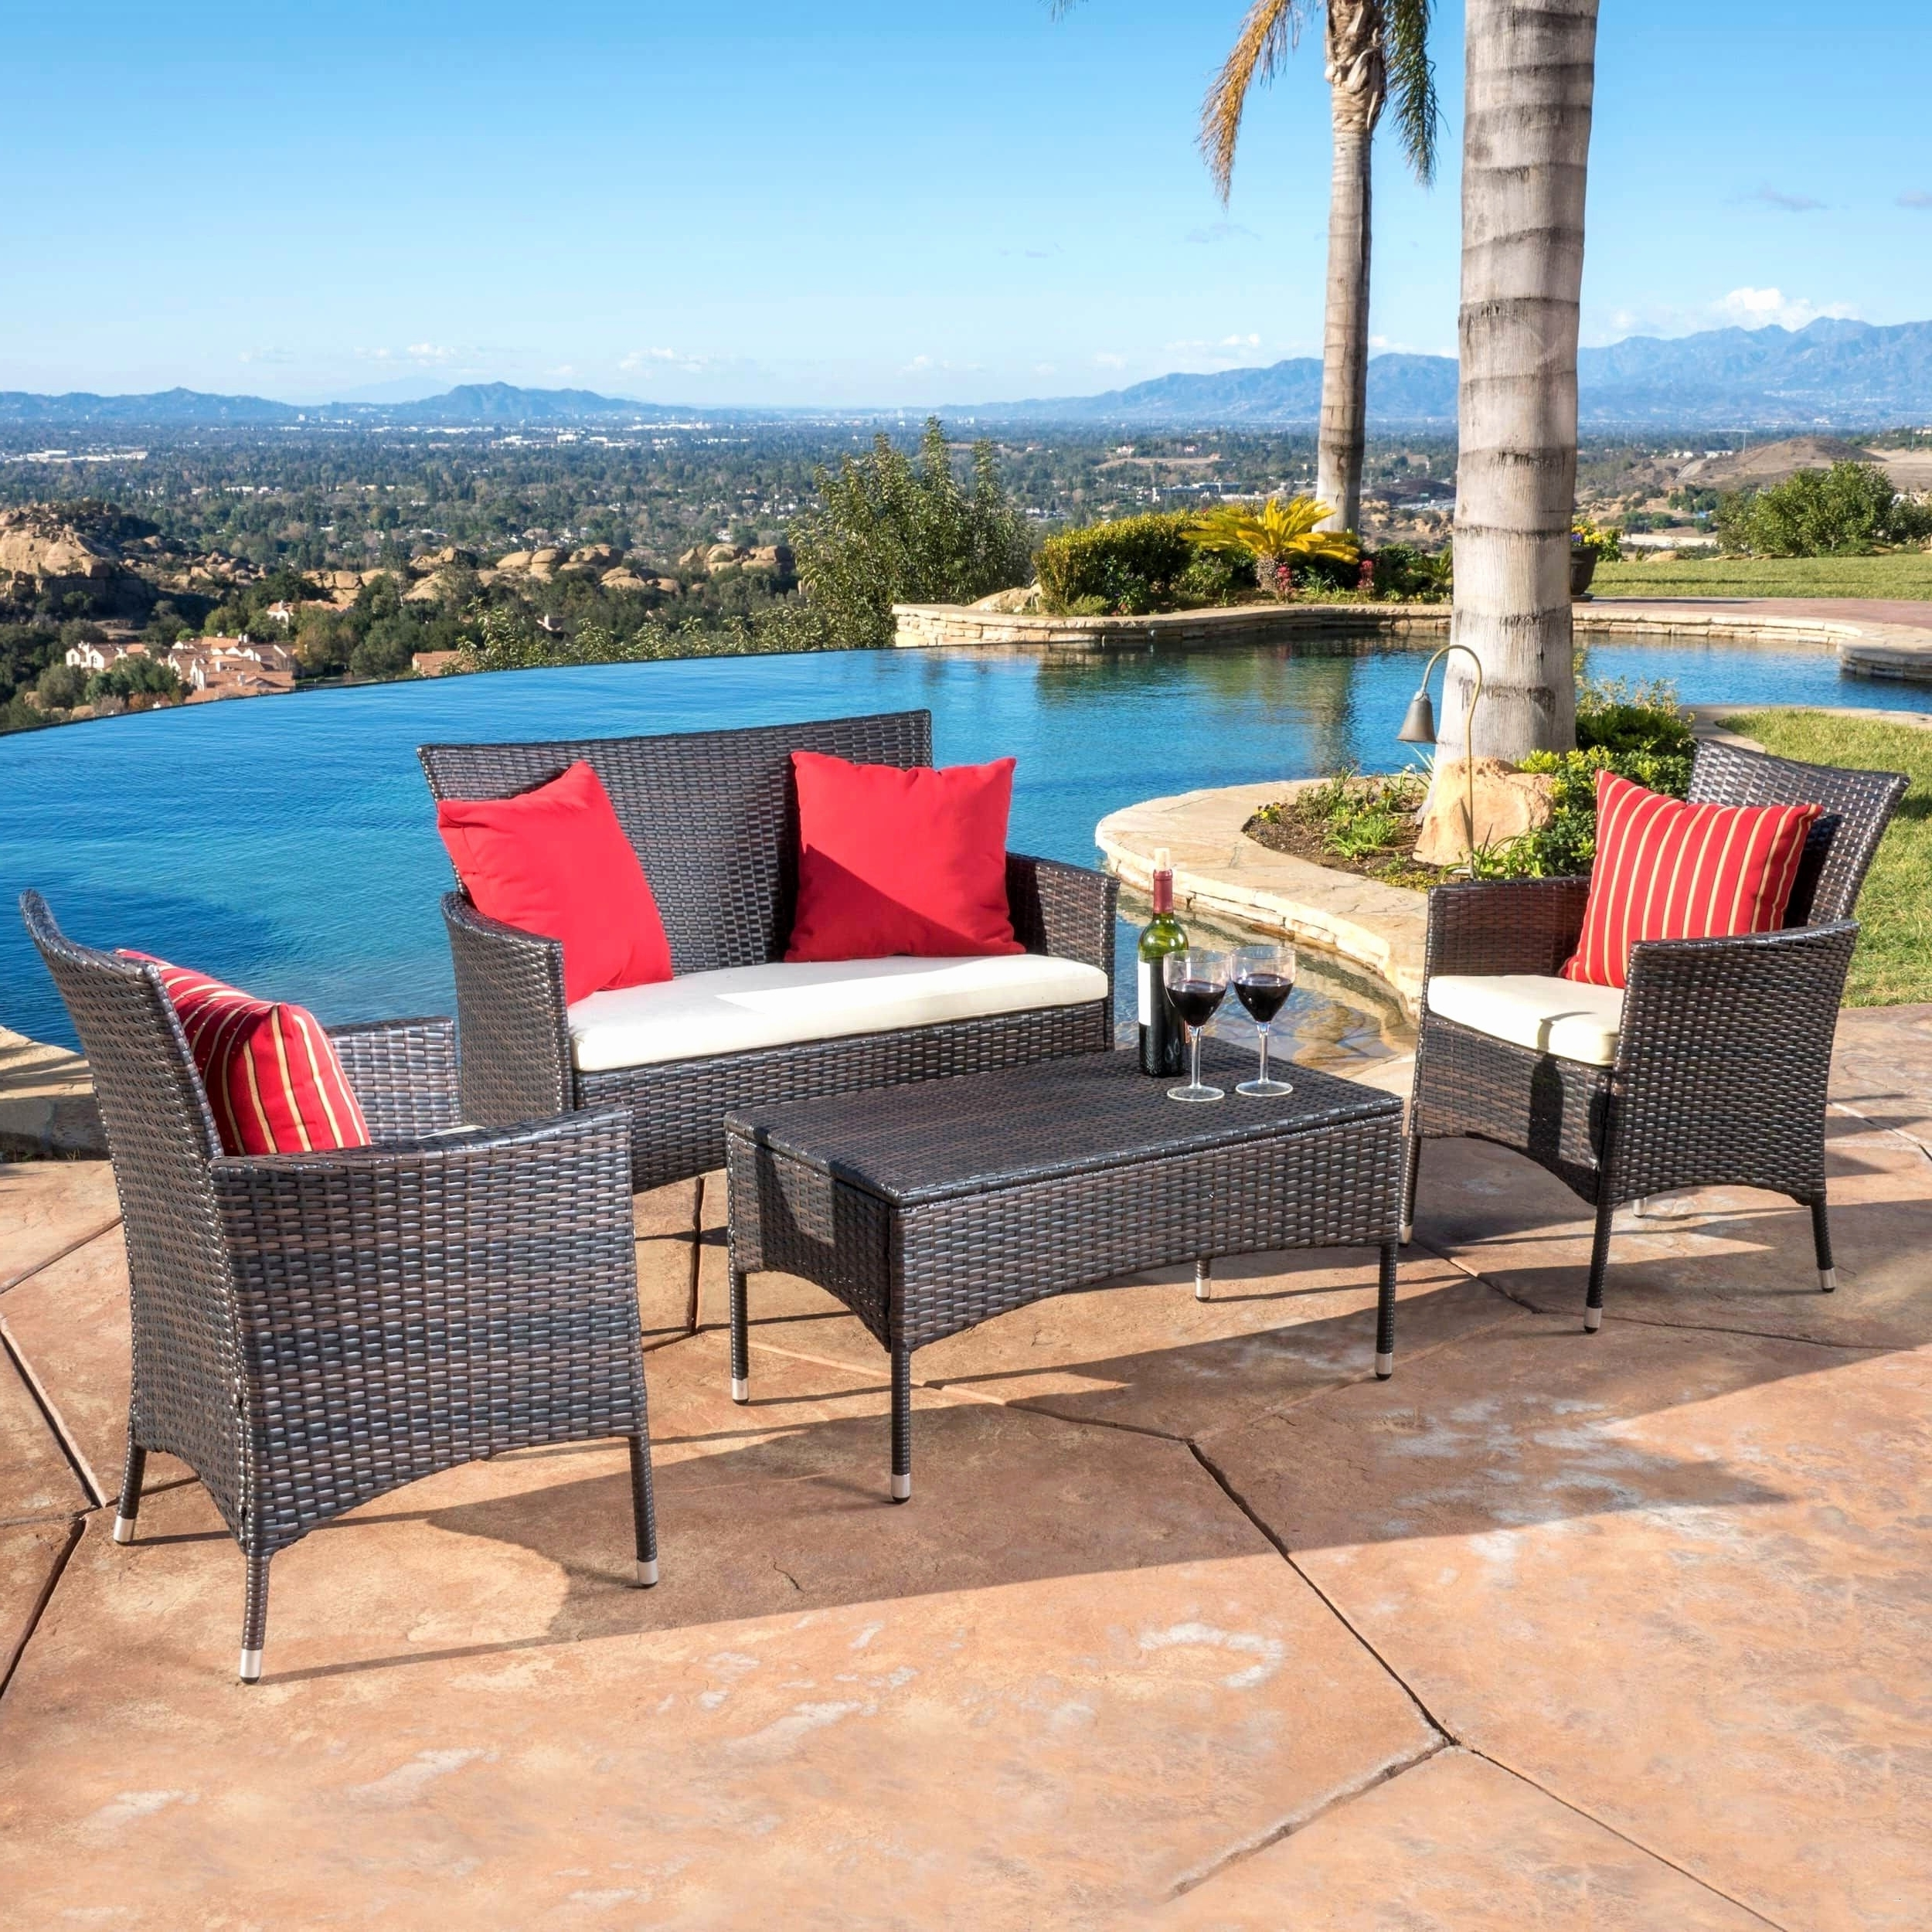 Safavieh Outdoor Furniture Lovely Outdoor Dining Patio Furniture Regarding Most Up To Date Patio Dining Umbrellas (View 14 of 20)